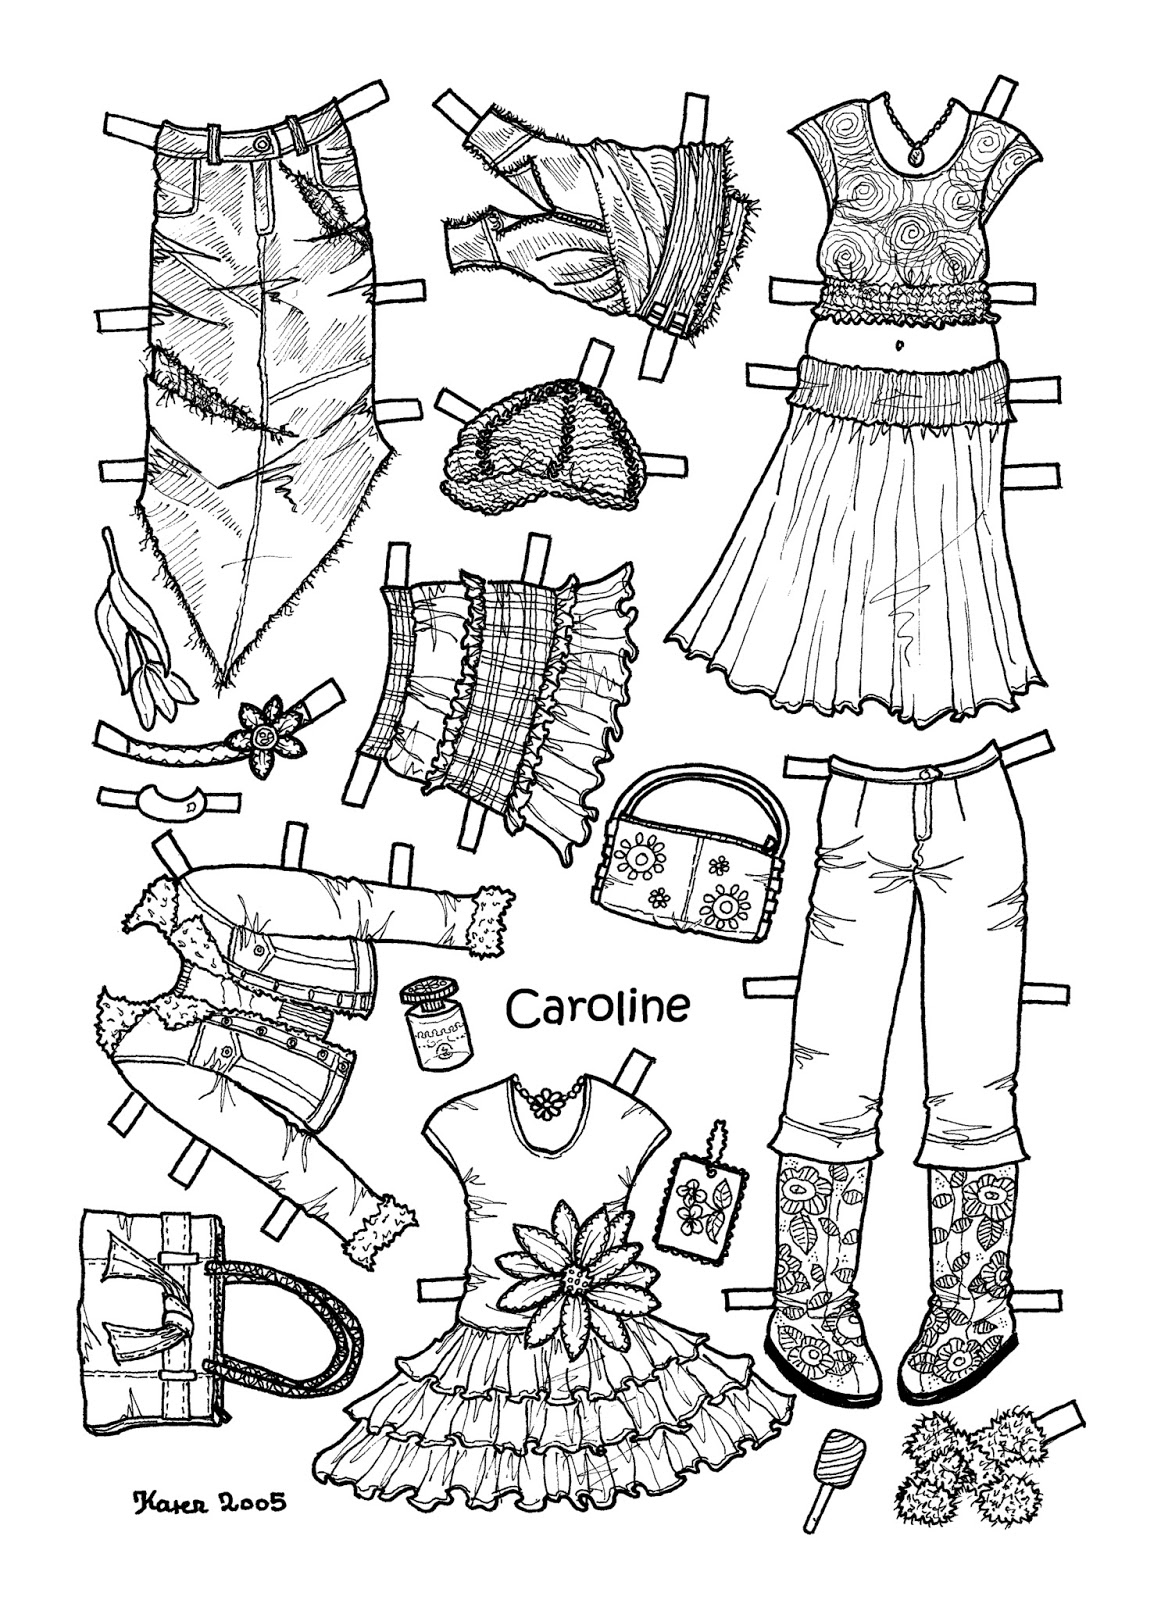 caroline coloring pages - photo#35